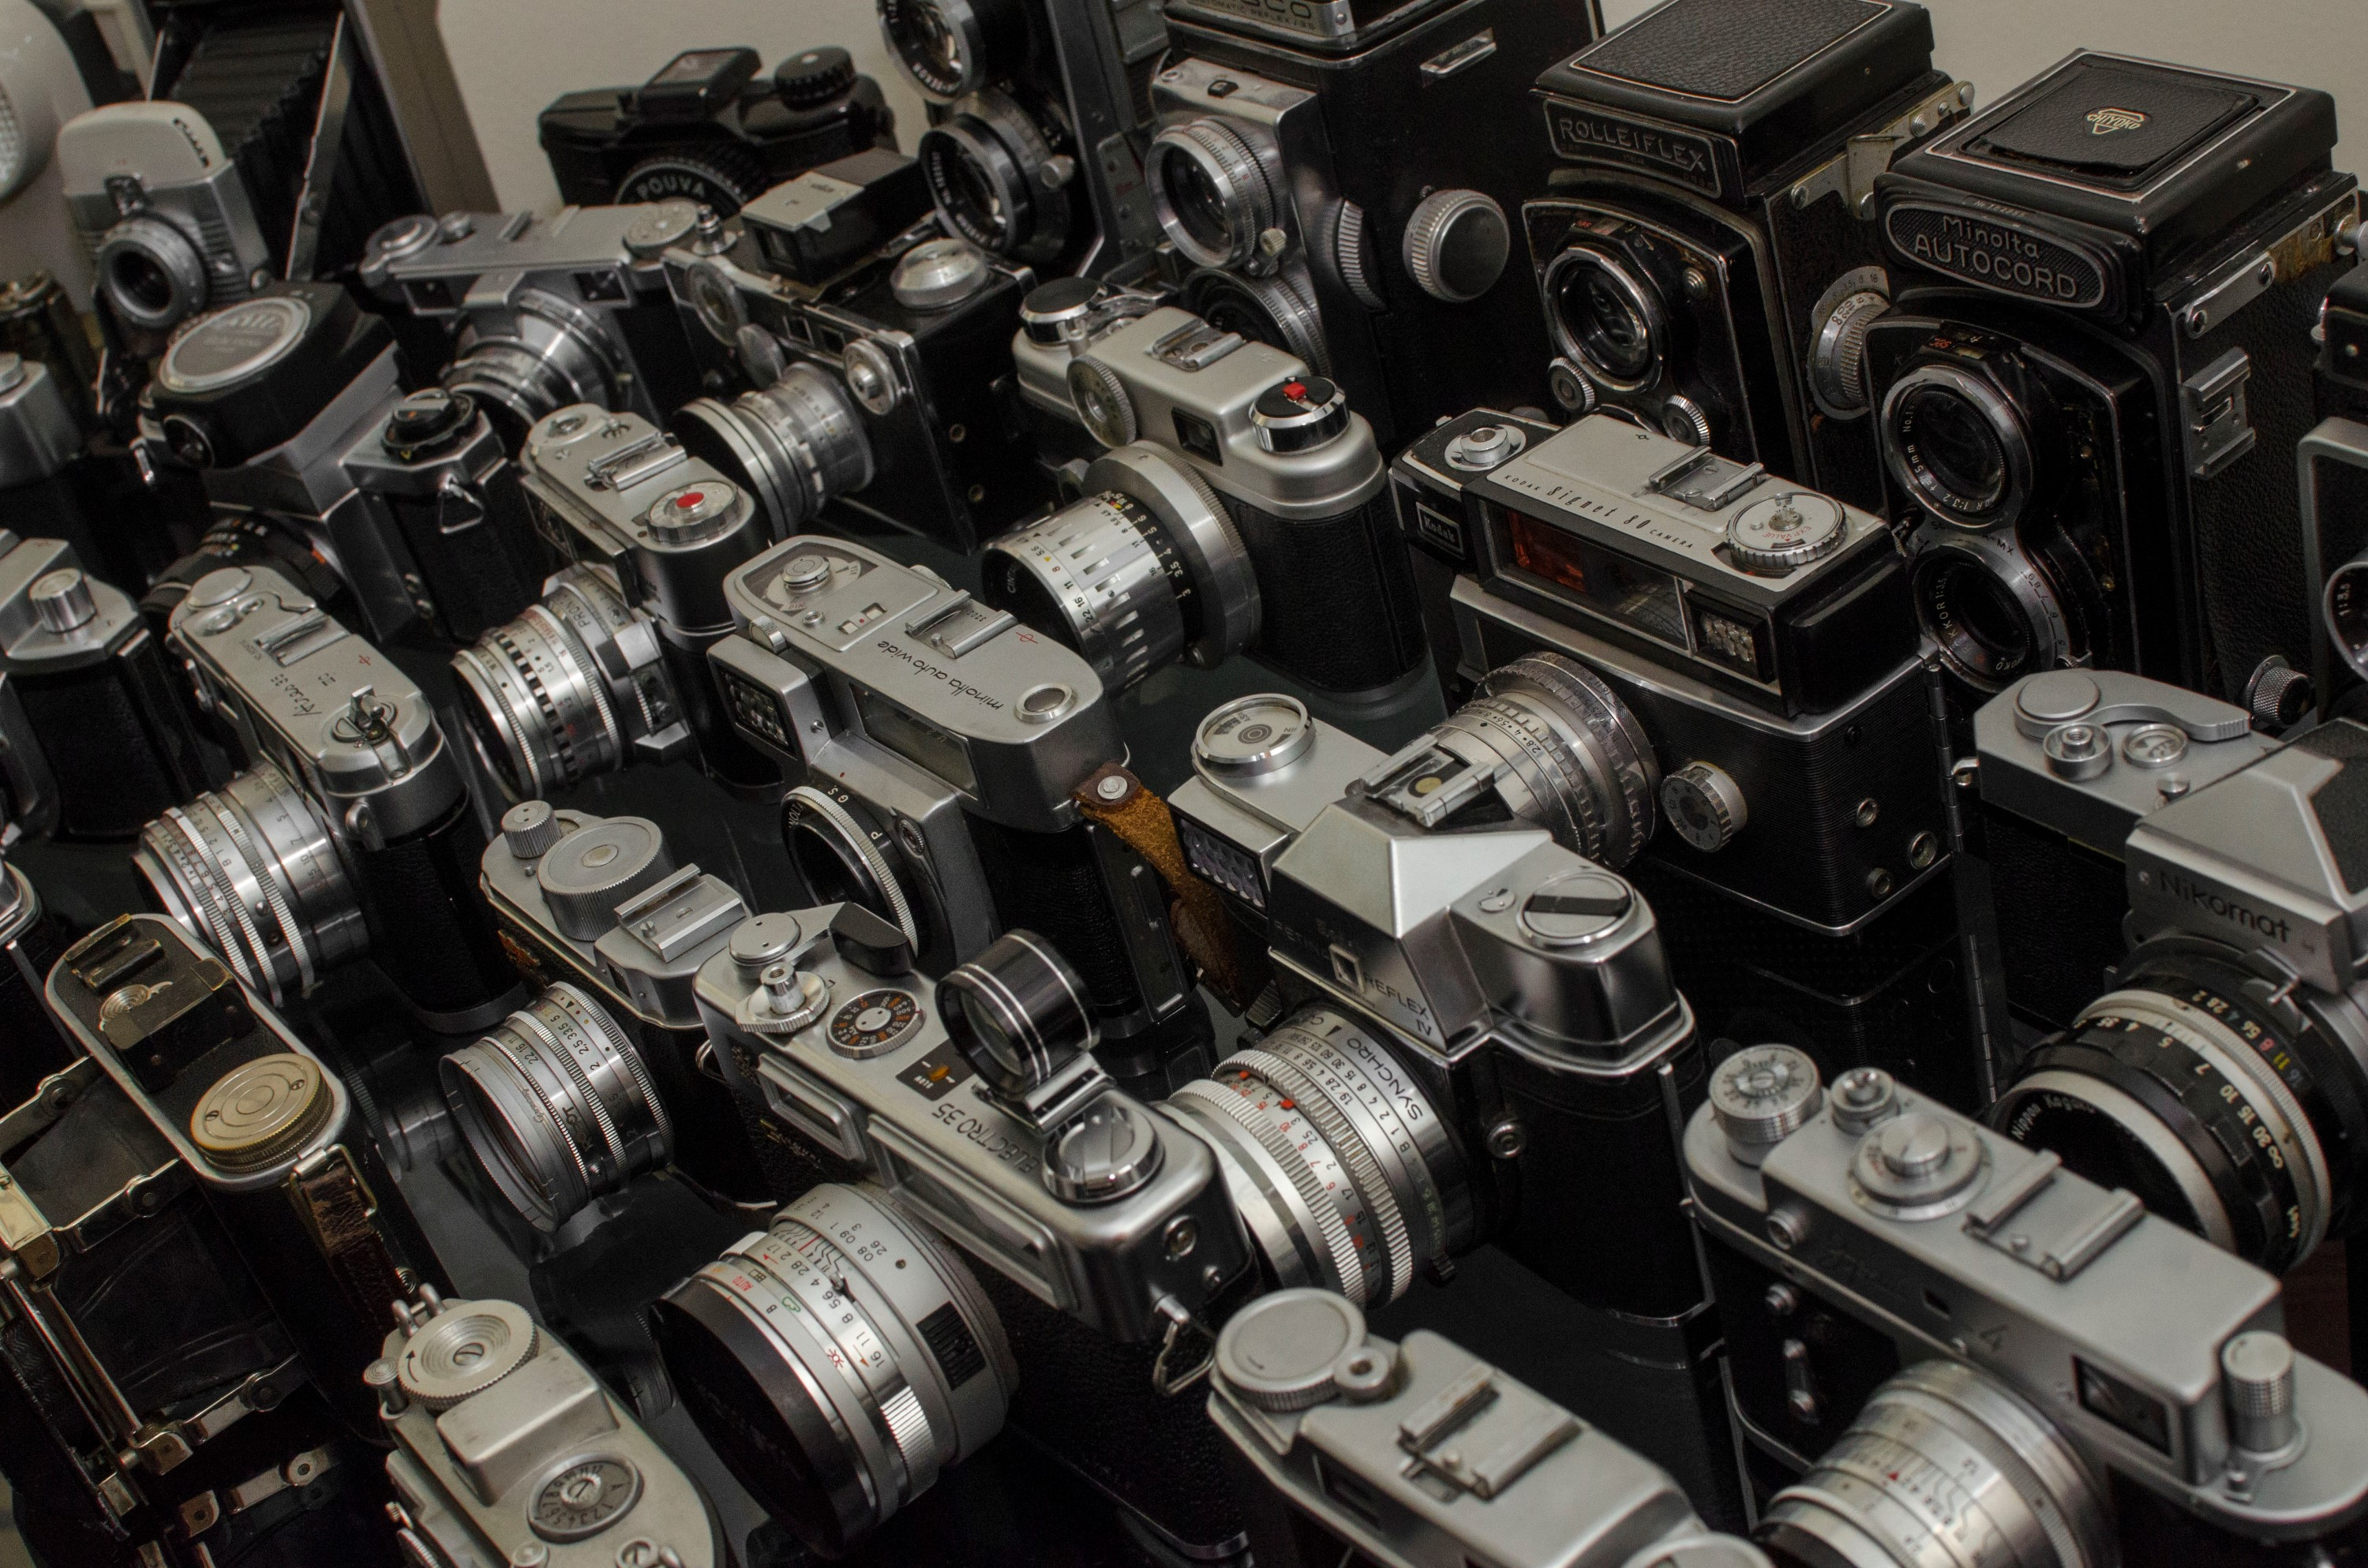 The Cameras of the Dead: The Reboot (aka Part IV)